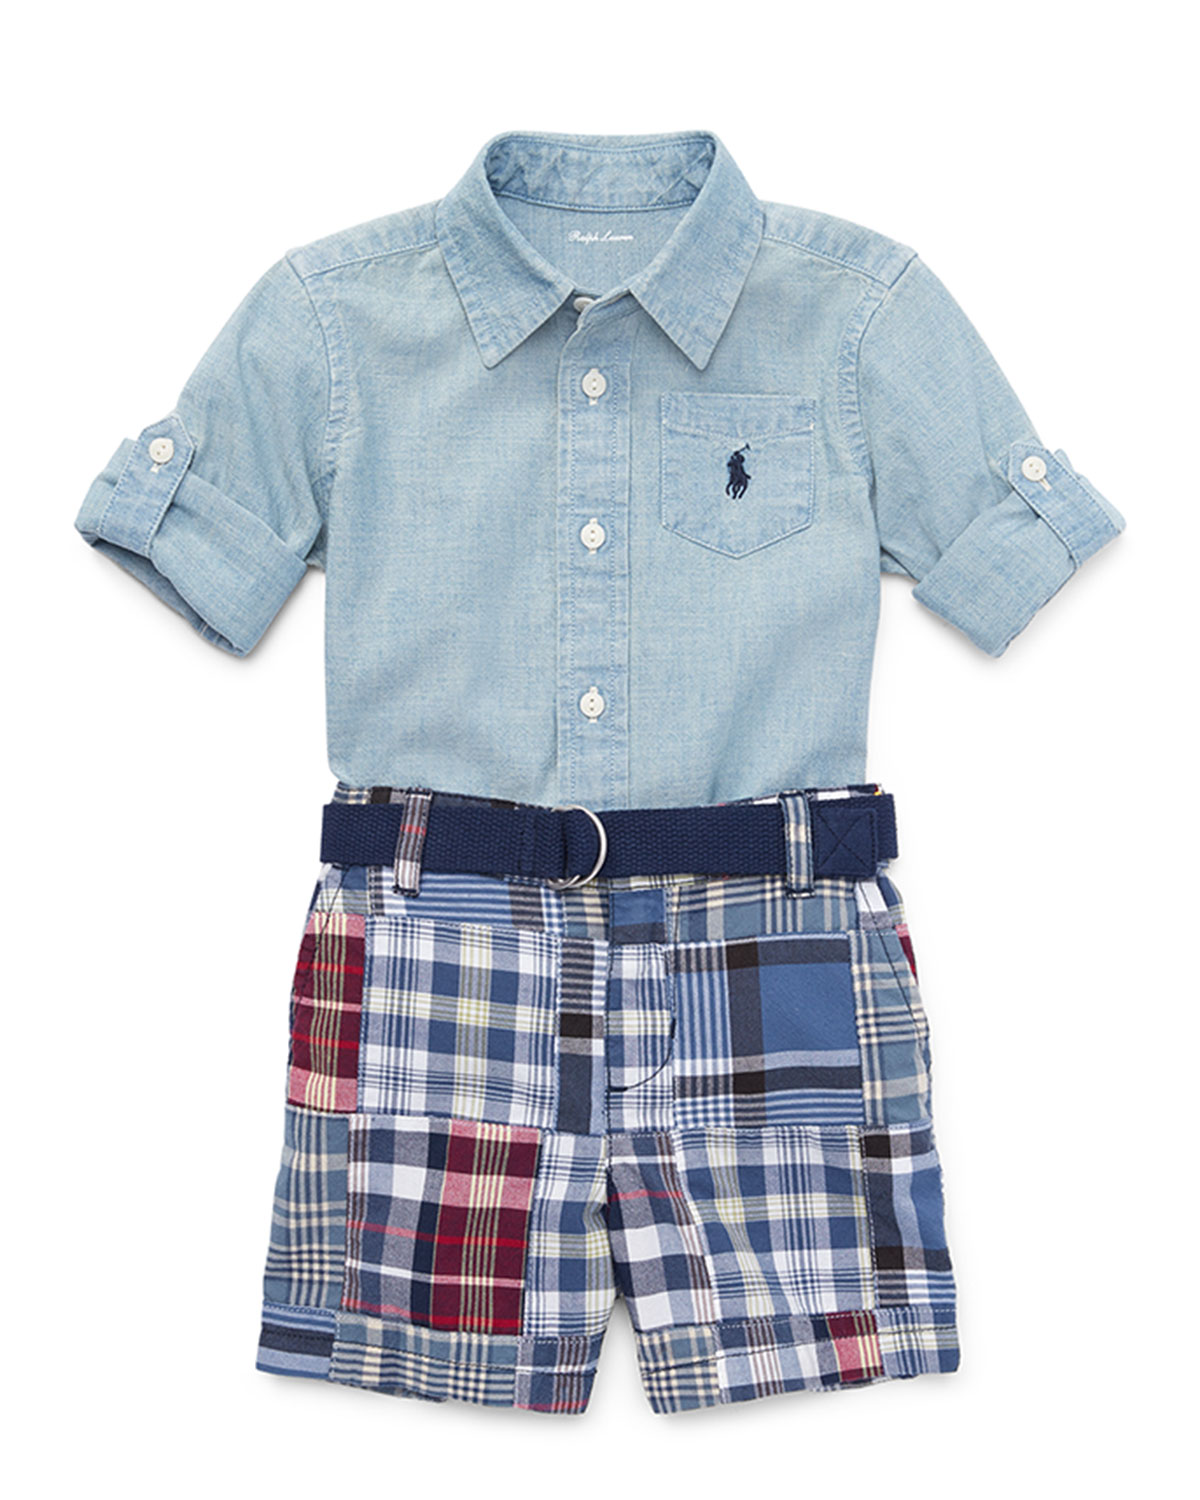 Chambray Shirt w Patchwork Shorts Size 924 Months